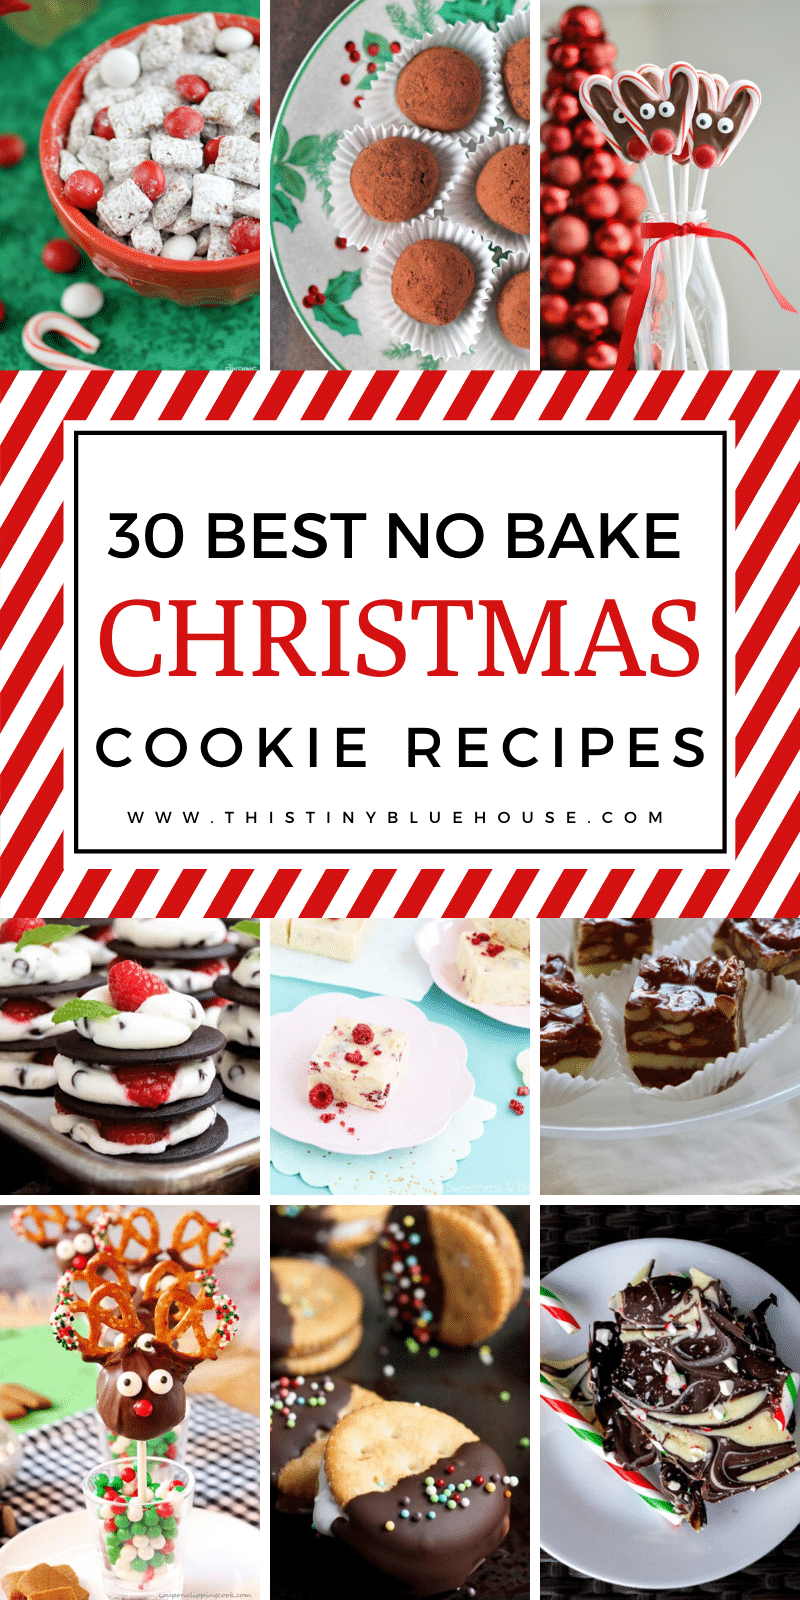 Looking for a quick or last minute holiday cookie or treat? Here are over 30 no bake Christmas cookies that would make the perfect addition to any holiday table, school event or potluck. #holidaycookies #holidaycookieschristmas #holidaycookiessimple #nobakecookies #nobakecookiesholidays #nobakecookiessimple #nobakecookieschristmassimple